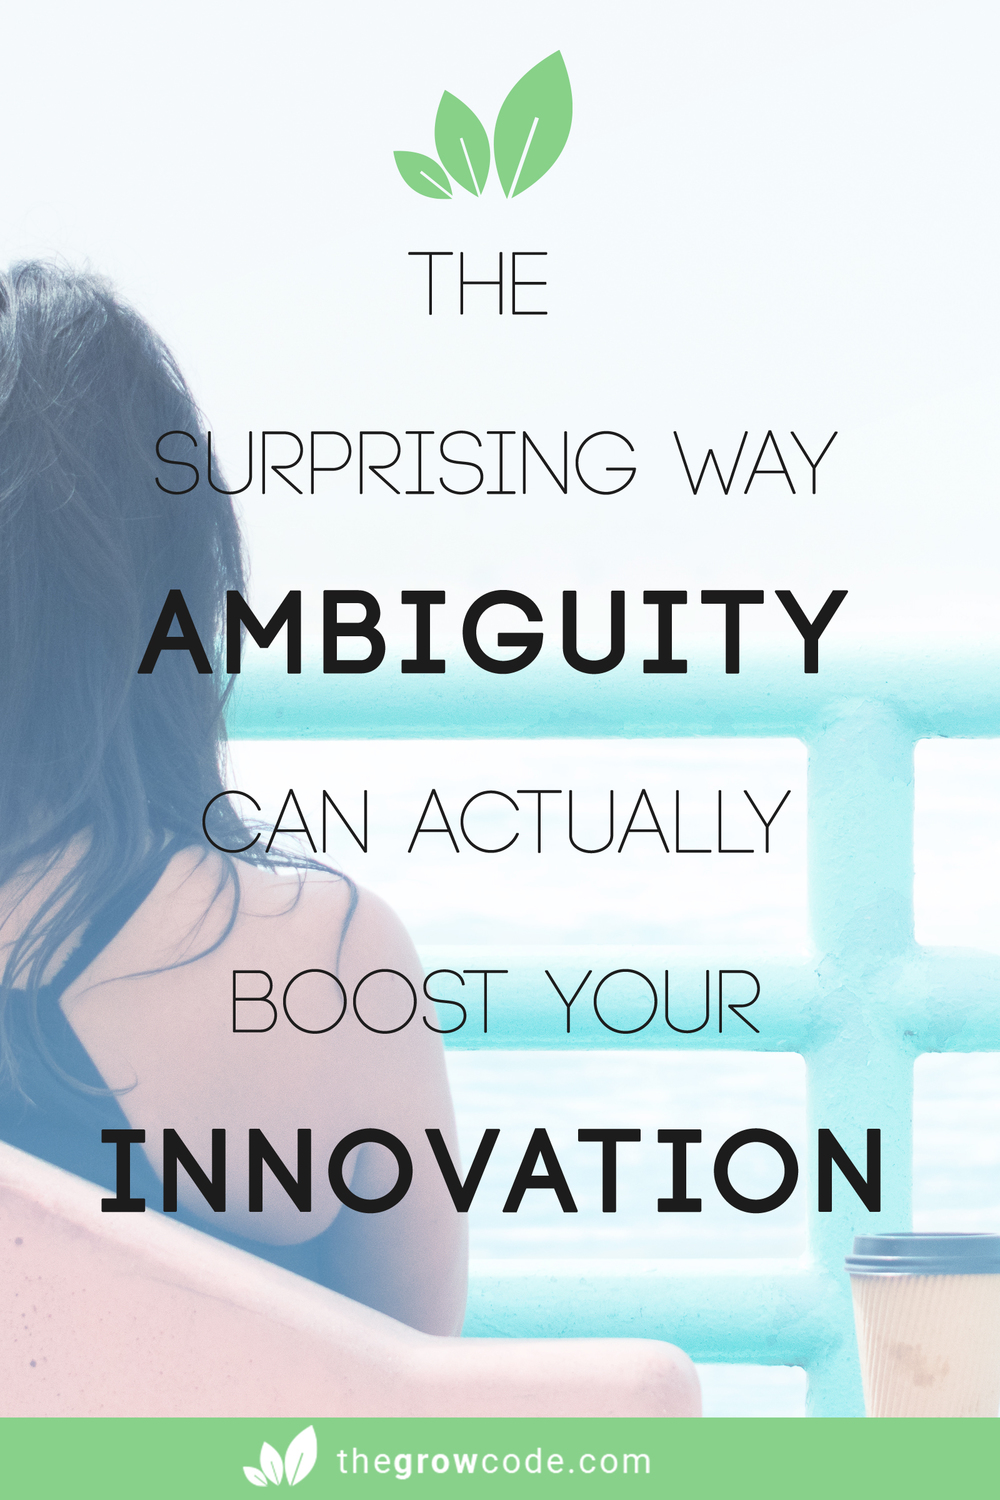 The surprising way ambiguity can actually boost your innovation